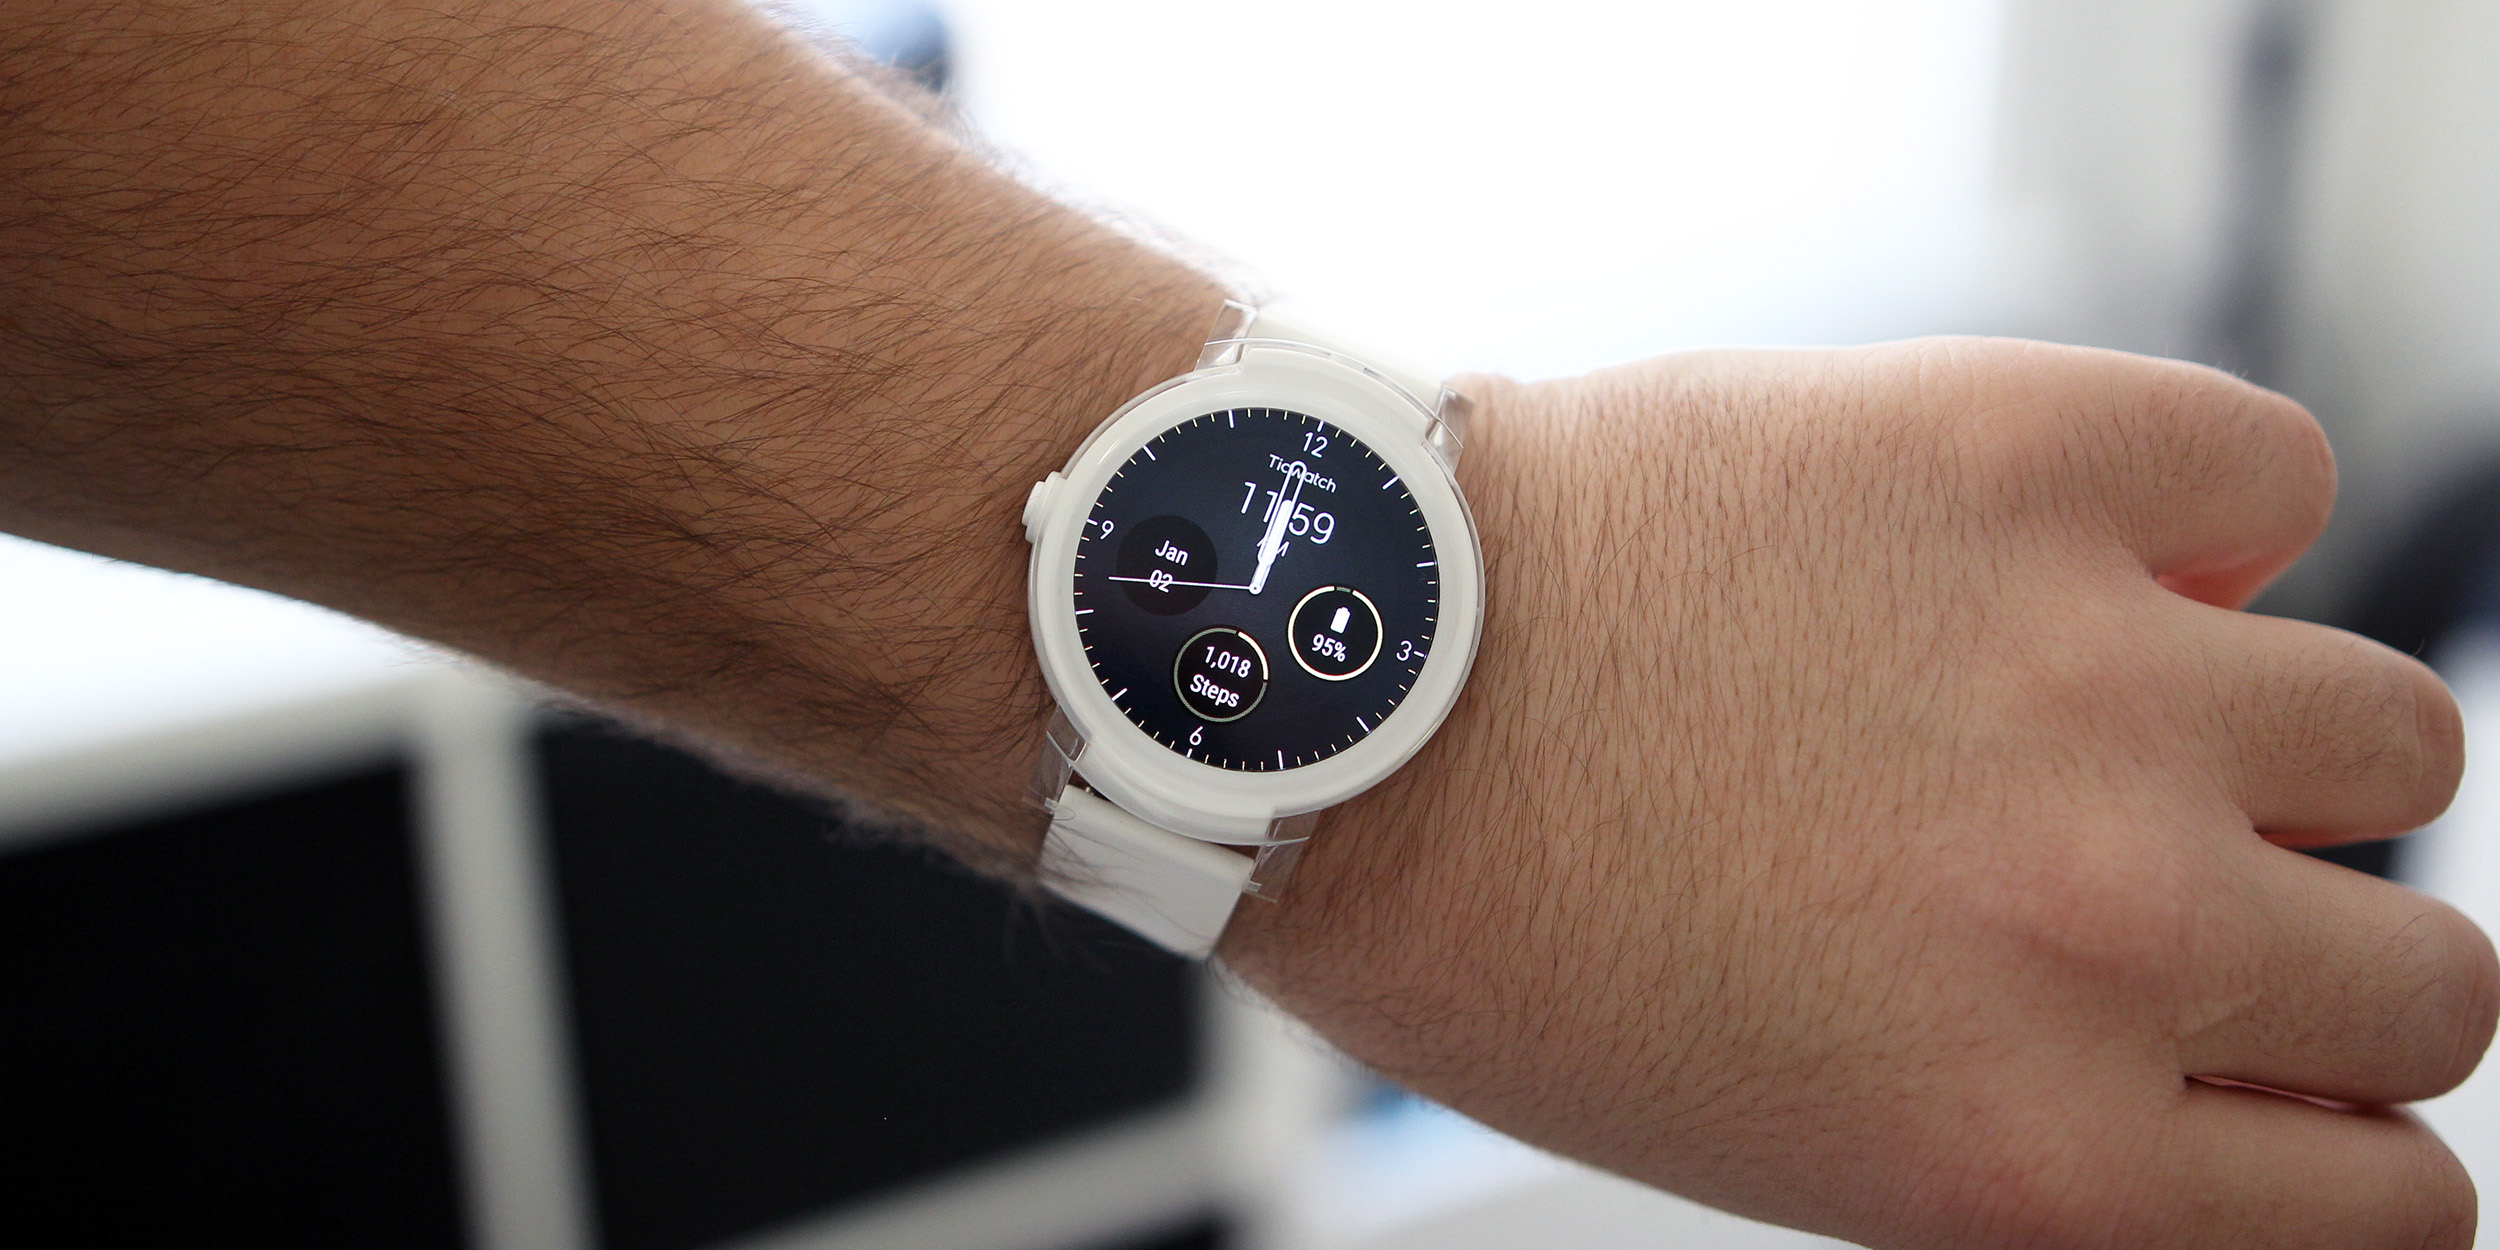 Best smartwatches for Android you can buy [September 2018